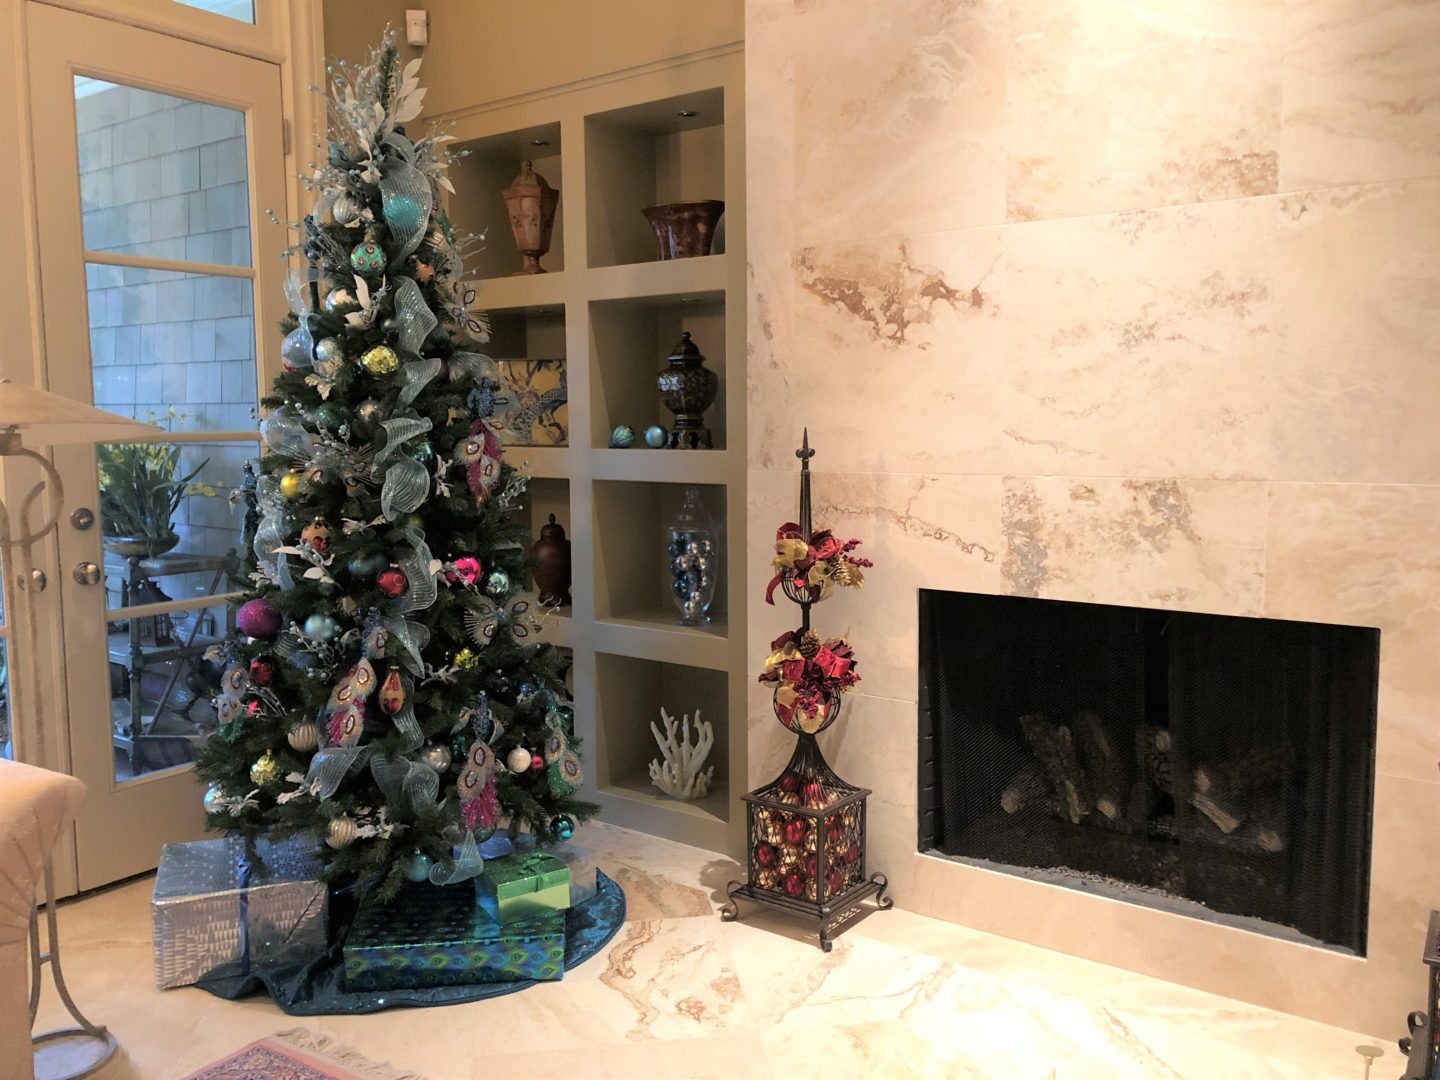 Holiday Fashion and My Home for the Holidays- Hello I'm 50ish